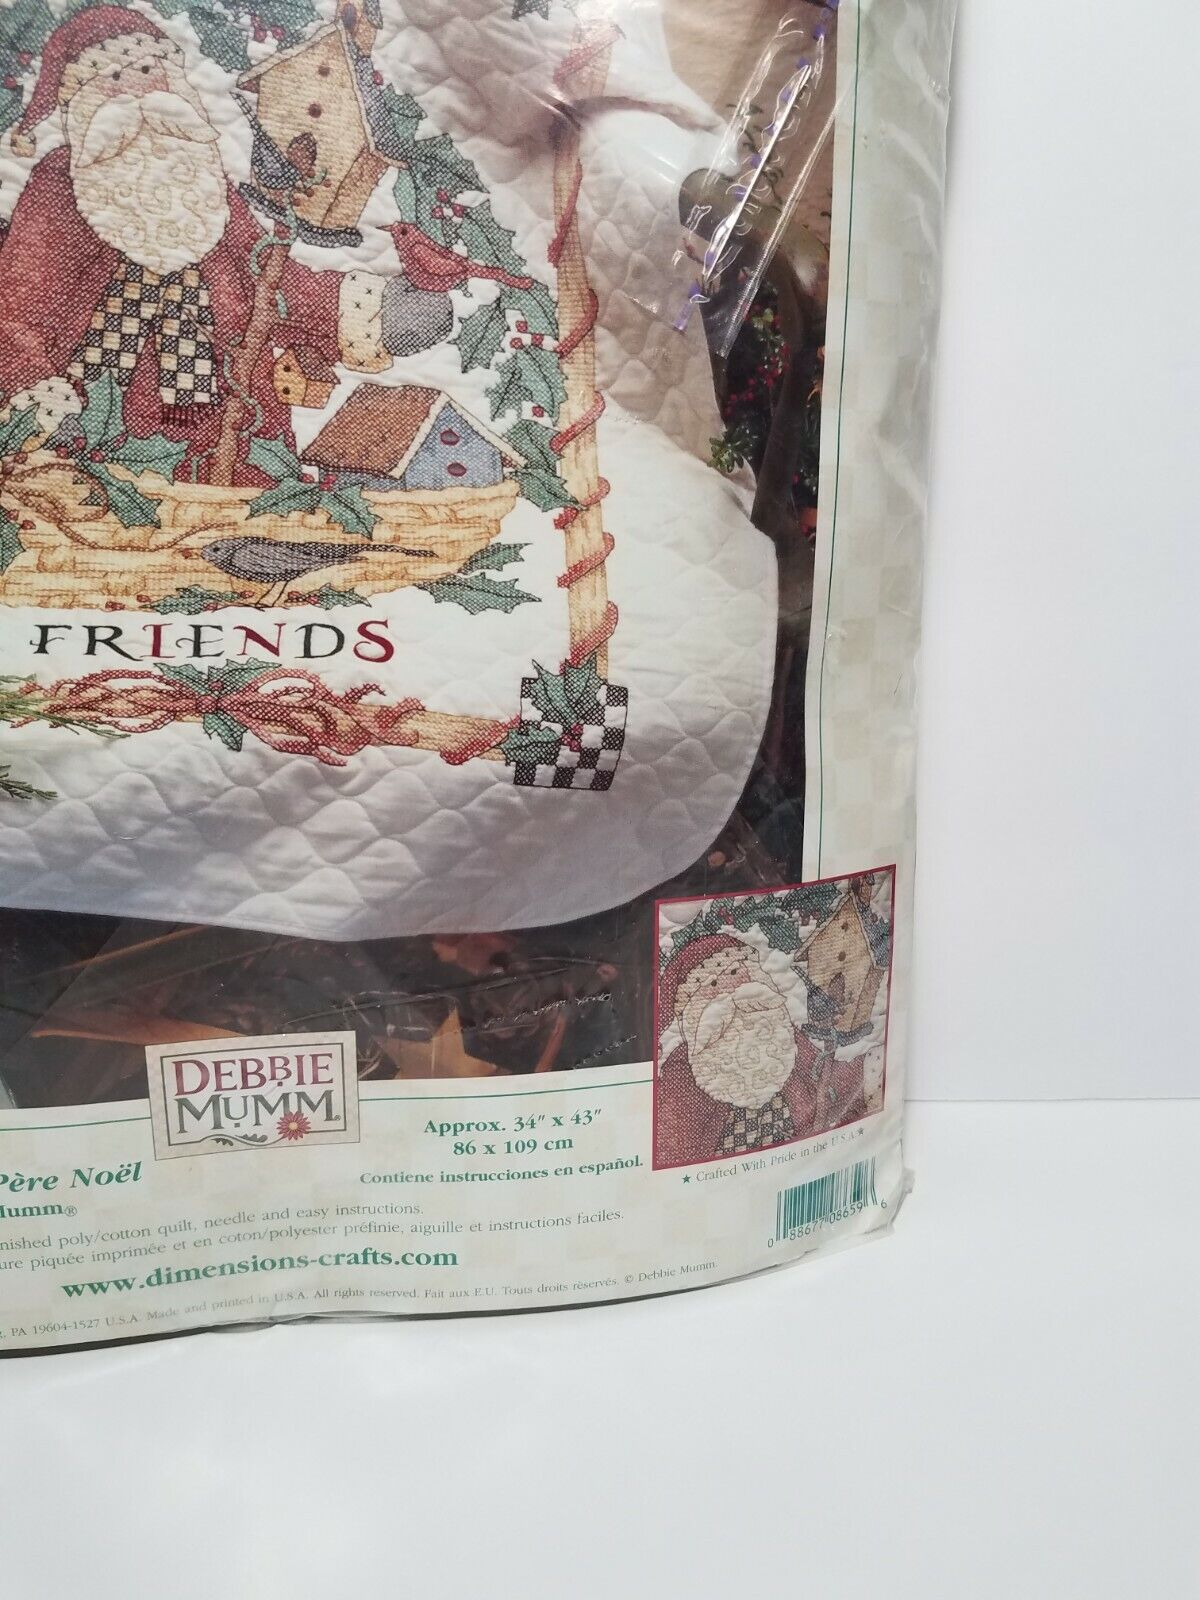 NEW Dimensions Debbie Mumm Holiday SANTA S WELCOME QUILT KIT, Pre-Quilted 8659 - $64.99